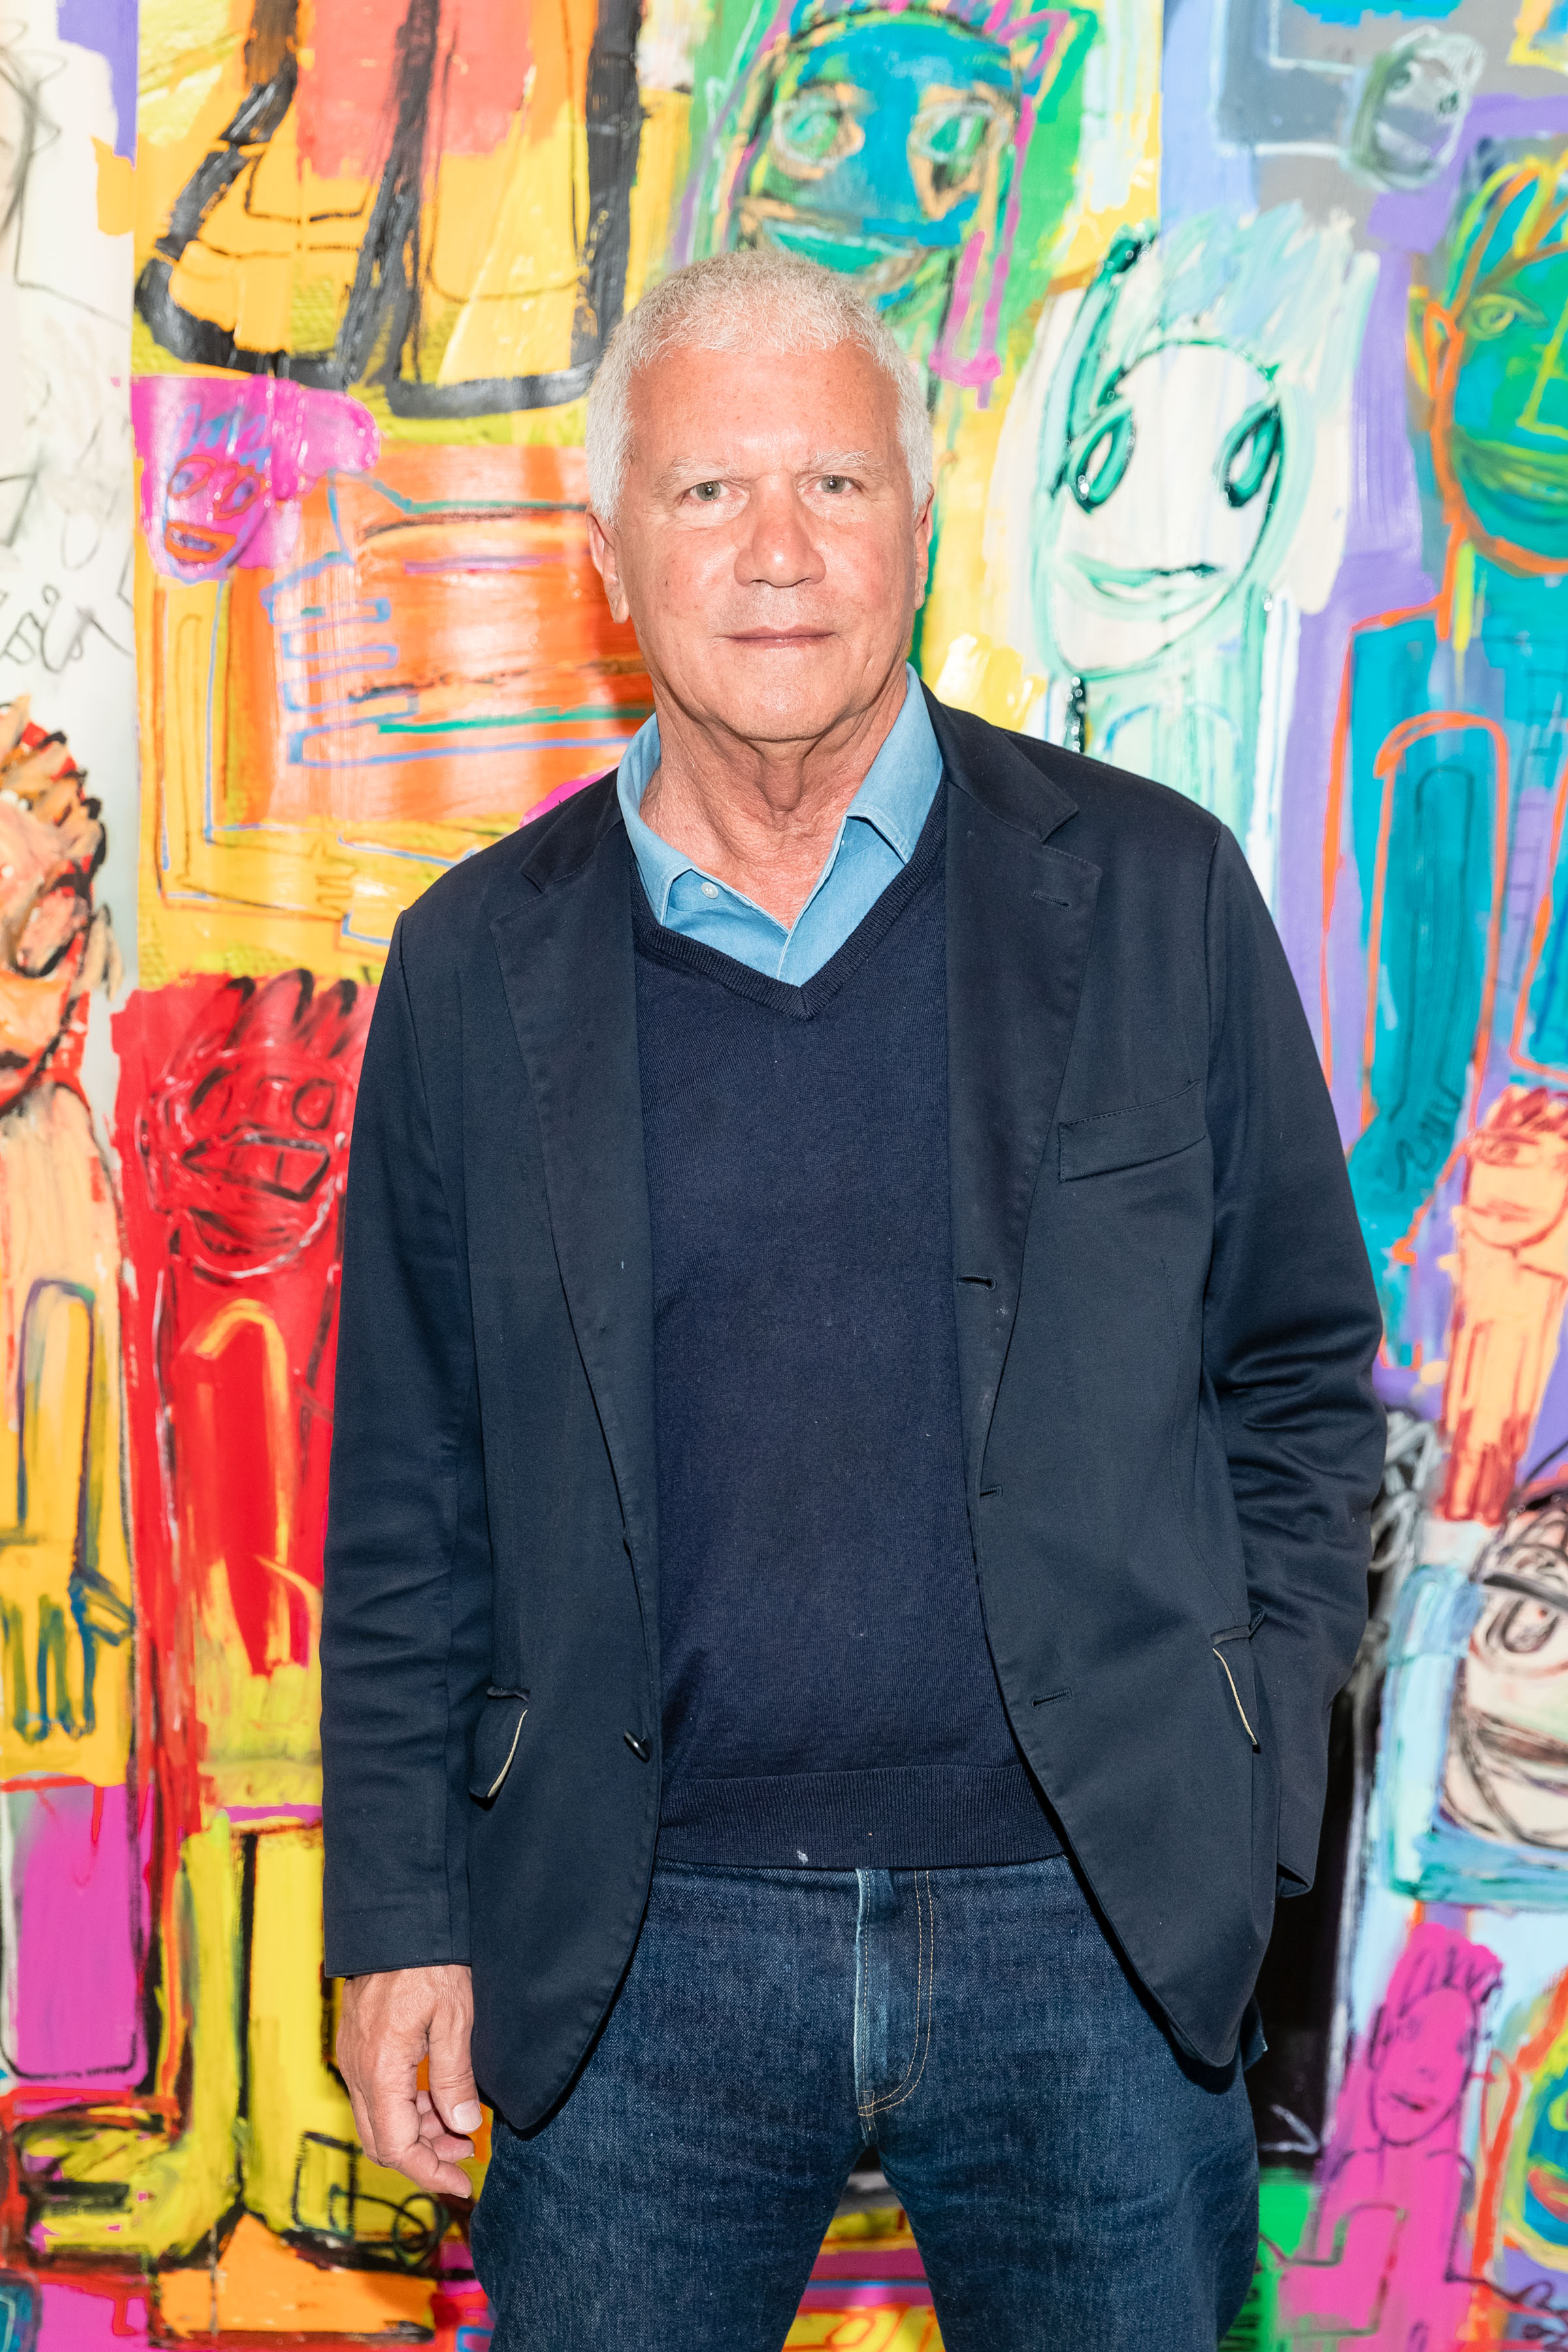 Larry Gagosian Gets Interviewed by GQ Style, Barely Fair Showcases Miniature Art in Chicago, and More: Morning Links from September 12, 2019 -